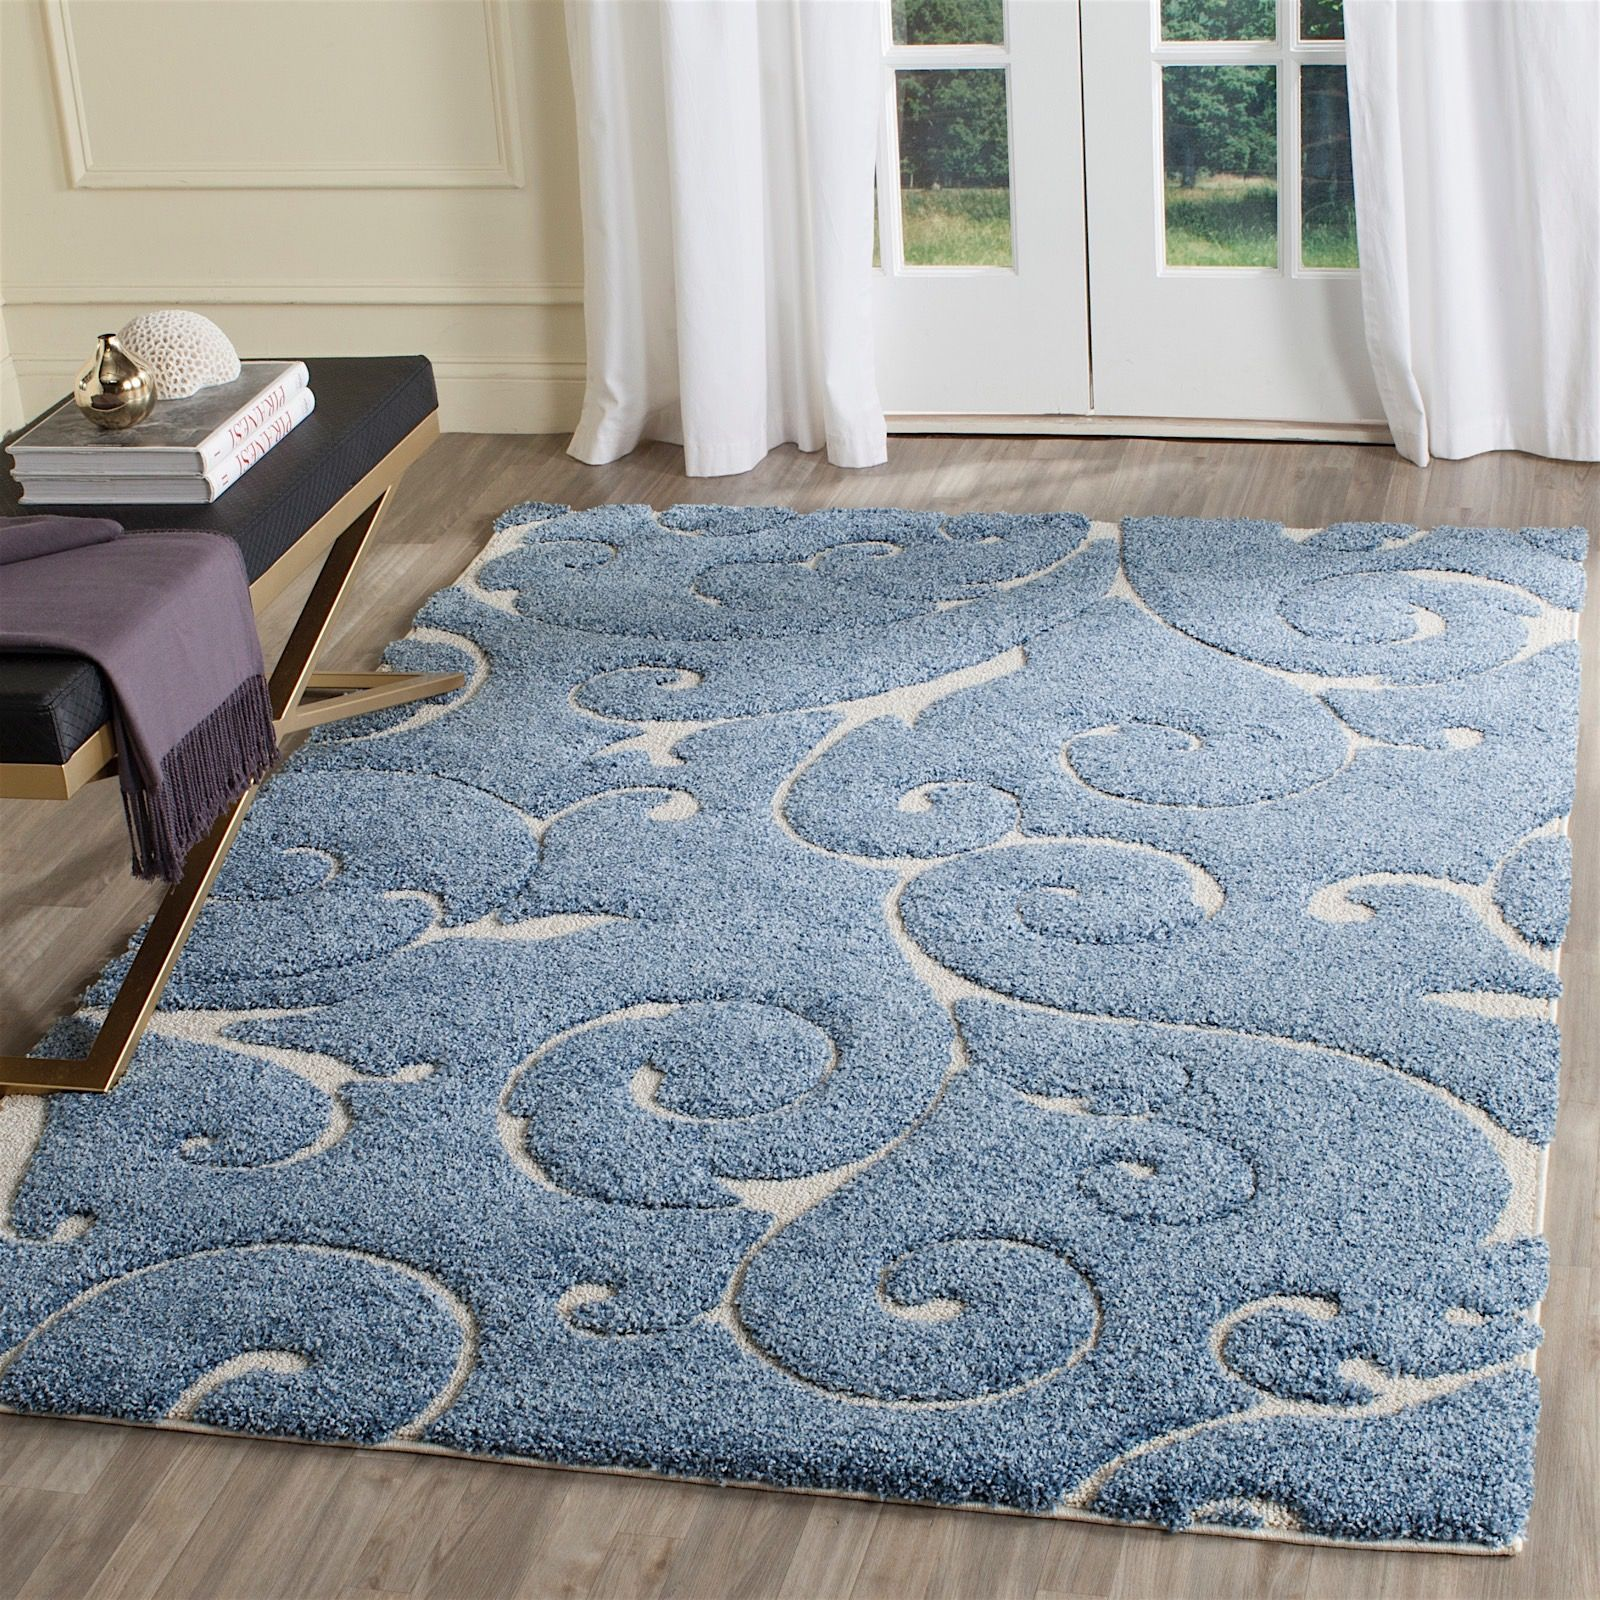 Safavieh Florida Shag Shag Area Rug Collection Rugpal